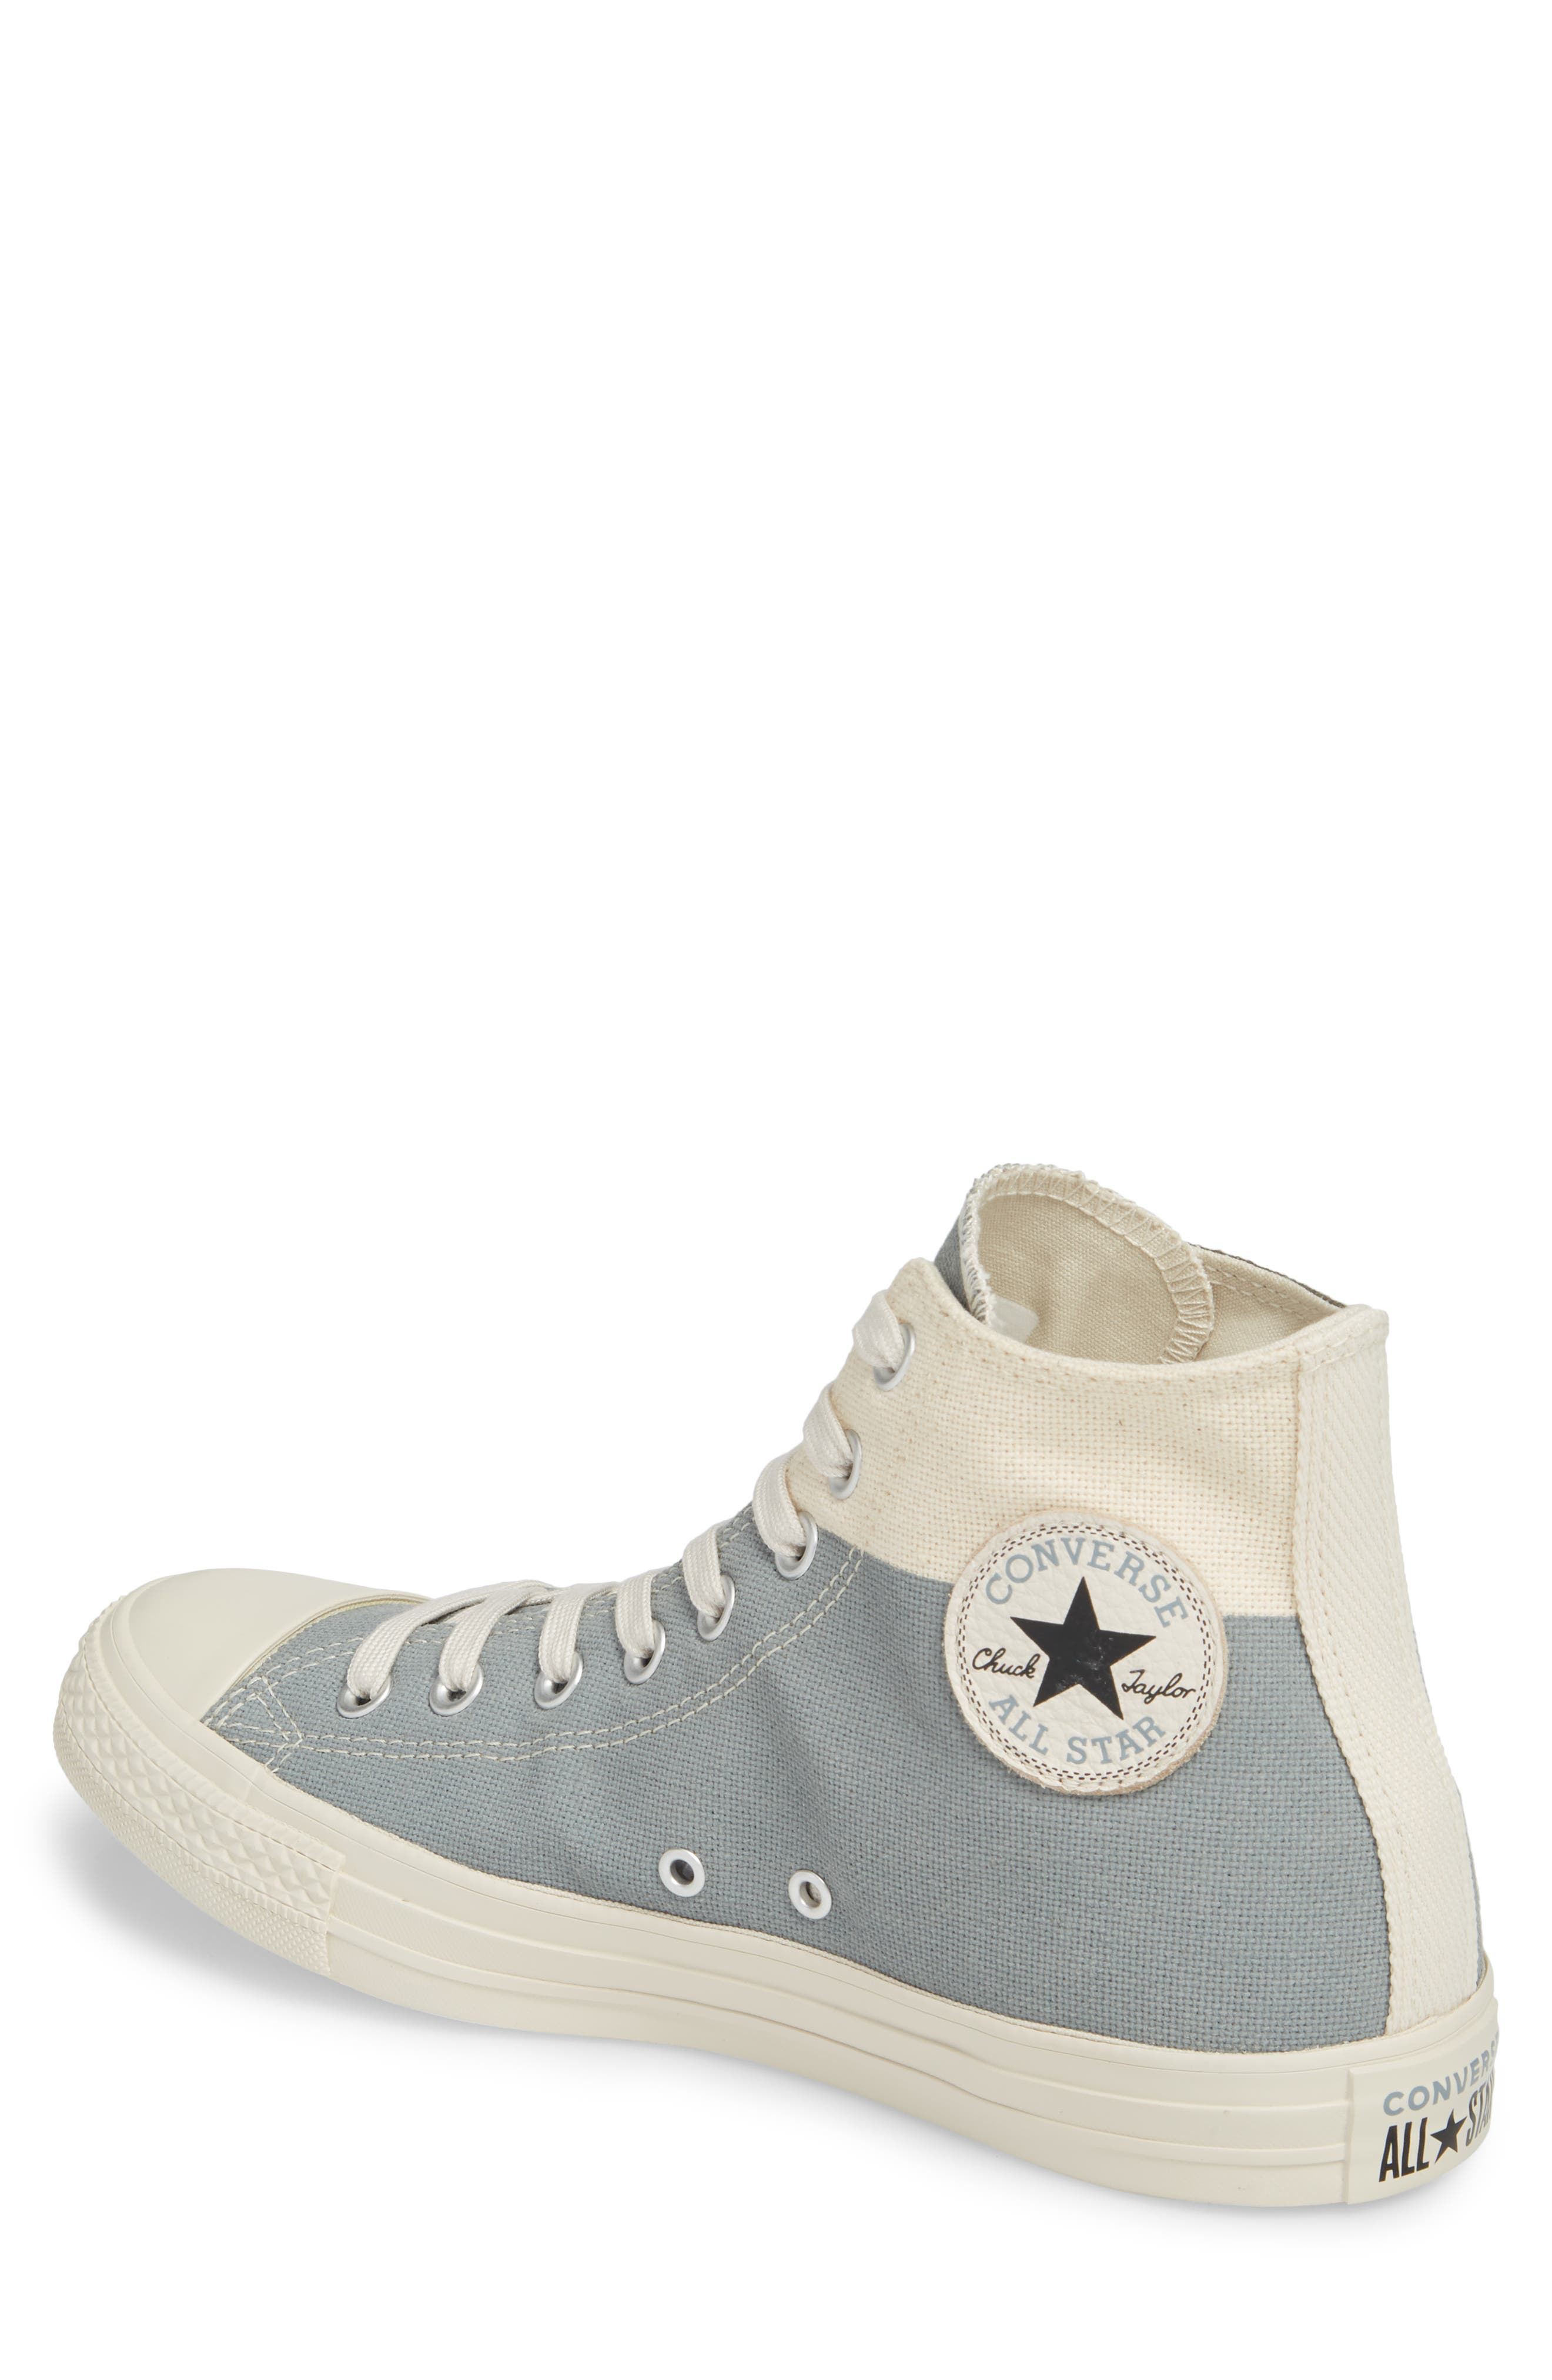 Chuck Taylor<sup>®</sup> All Star<sup>®</sup> Jute Americana High Top Sneaker,                             Alternate thumbnail 2, color,